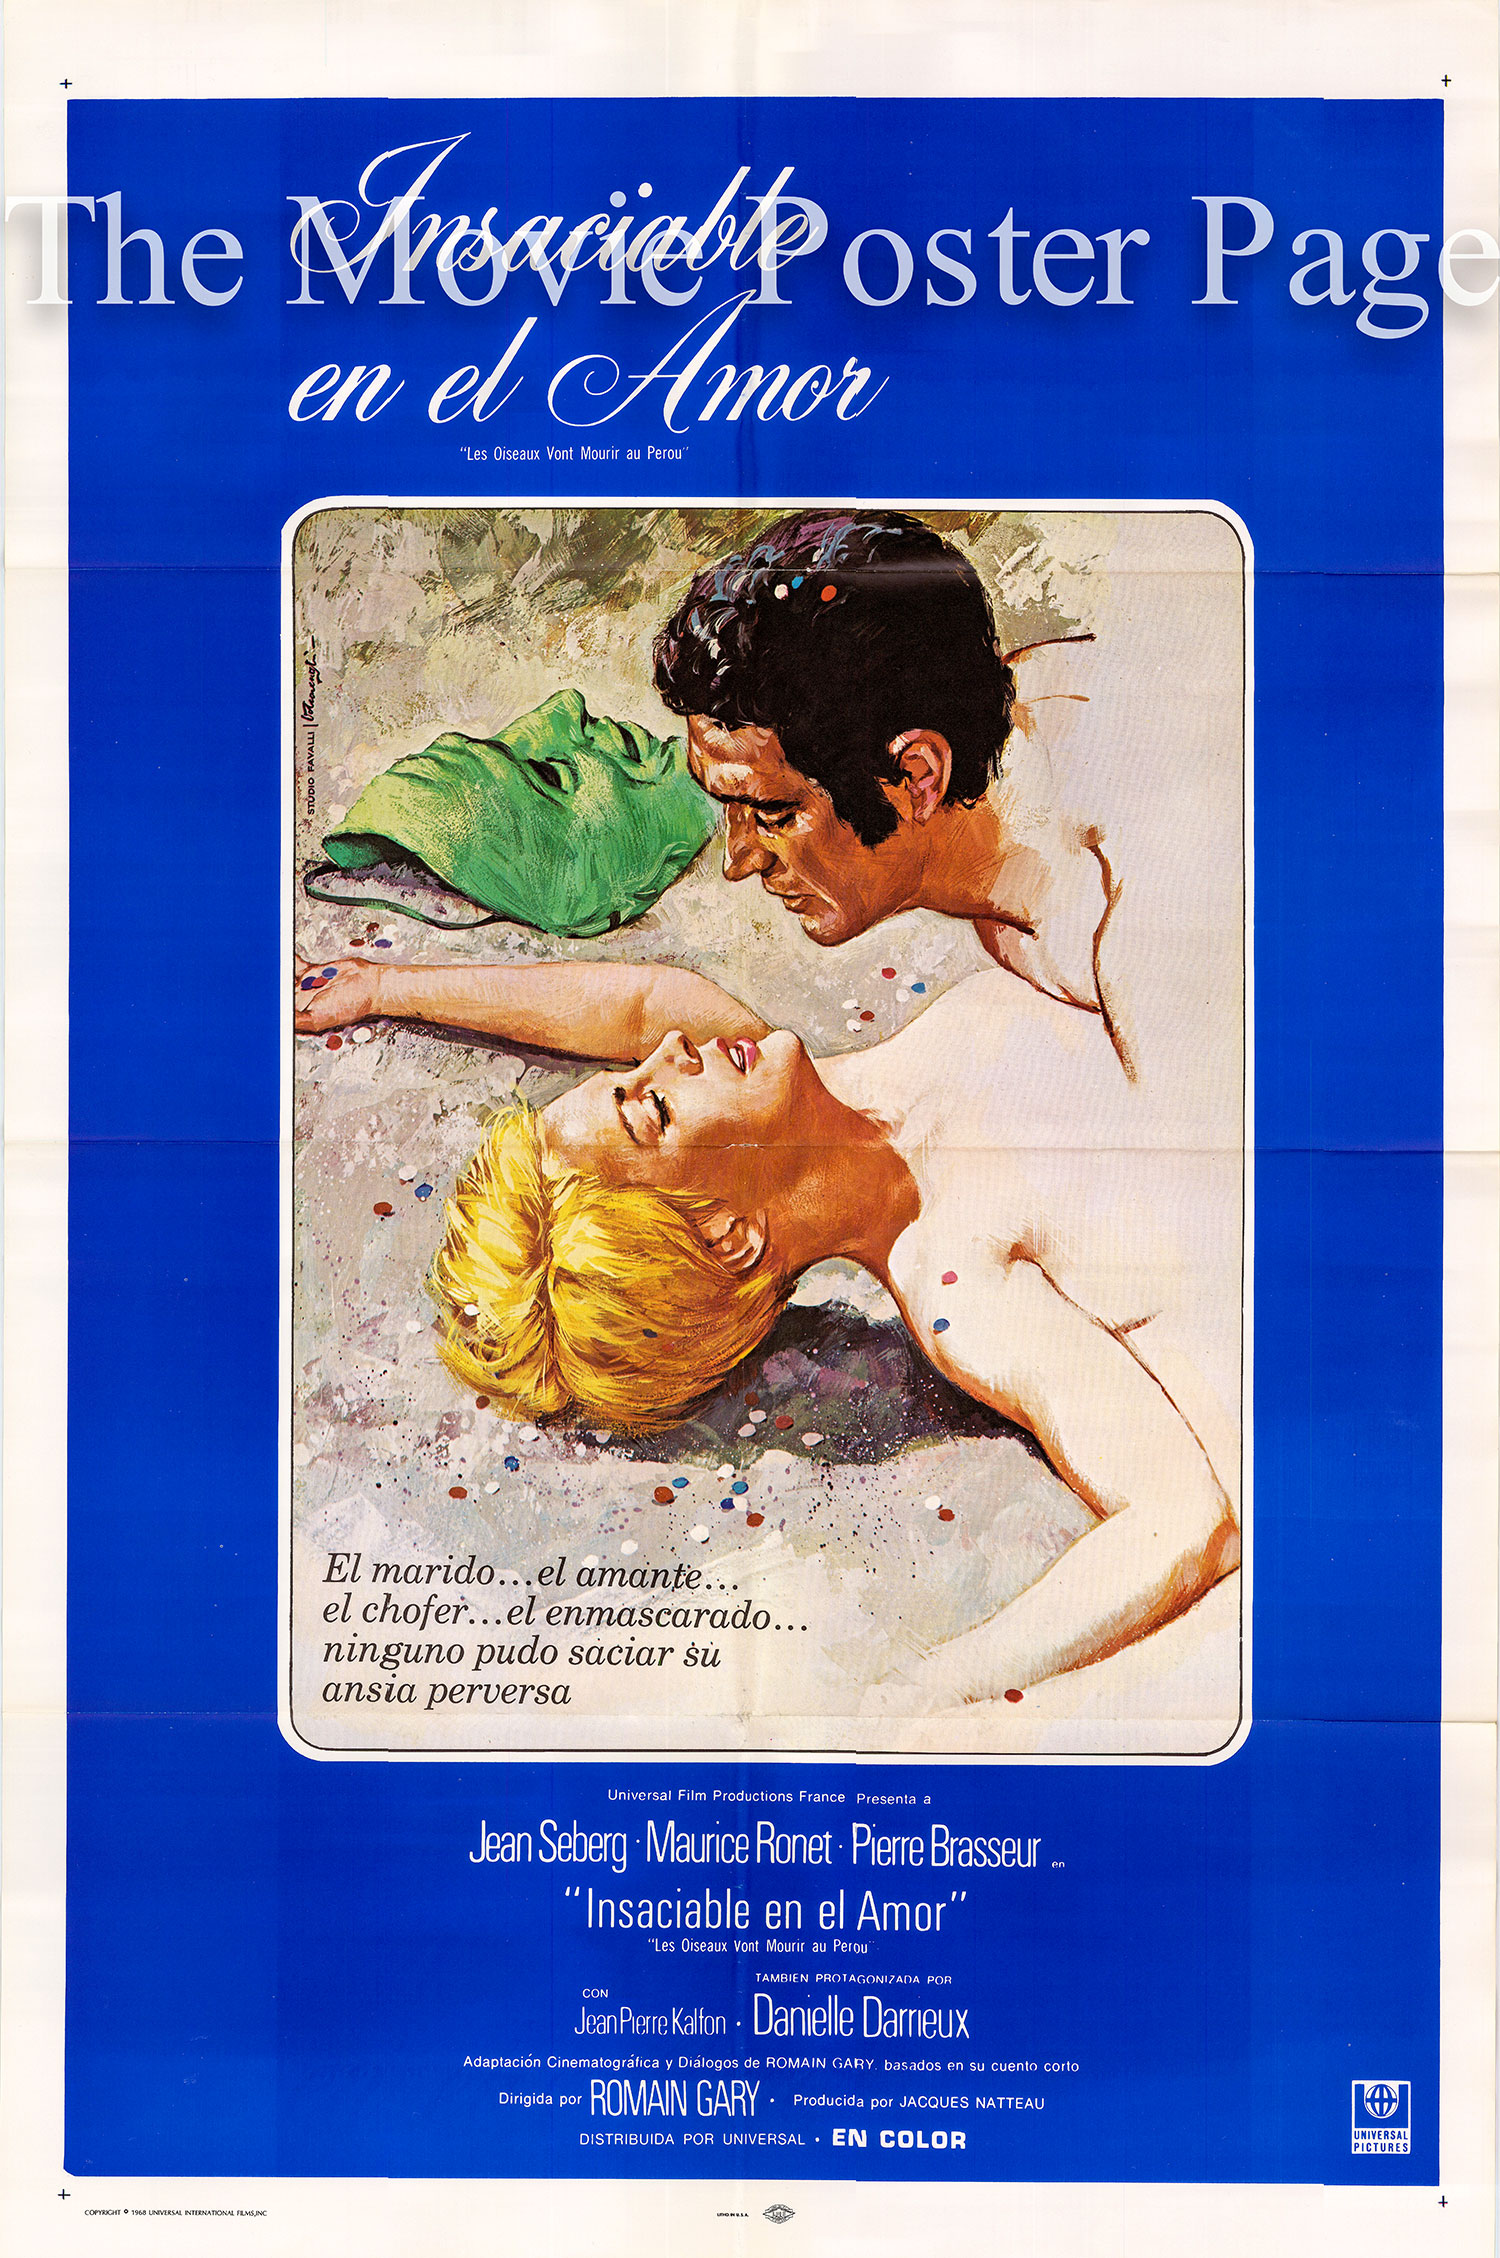 Pictured is a Spanish one-sheet poster for the 1968 Romain Gary film Birds in Peru starring Jean Seberg.